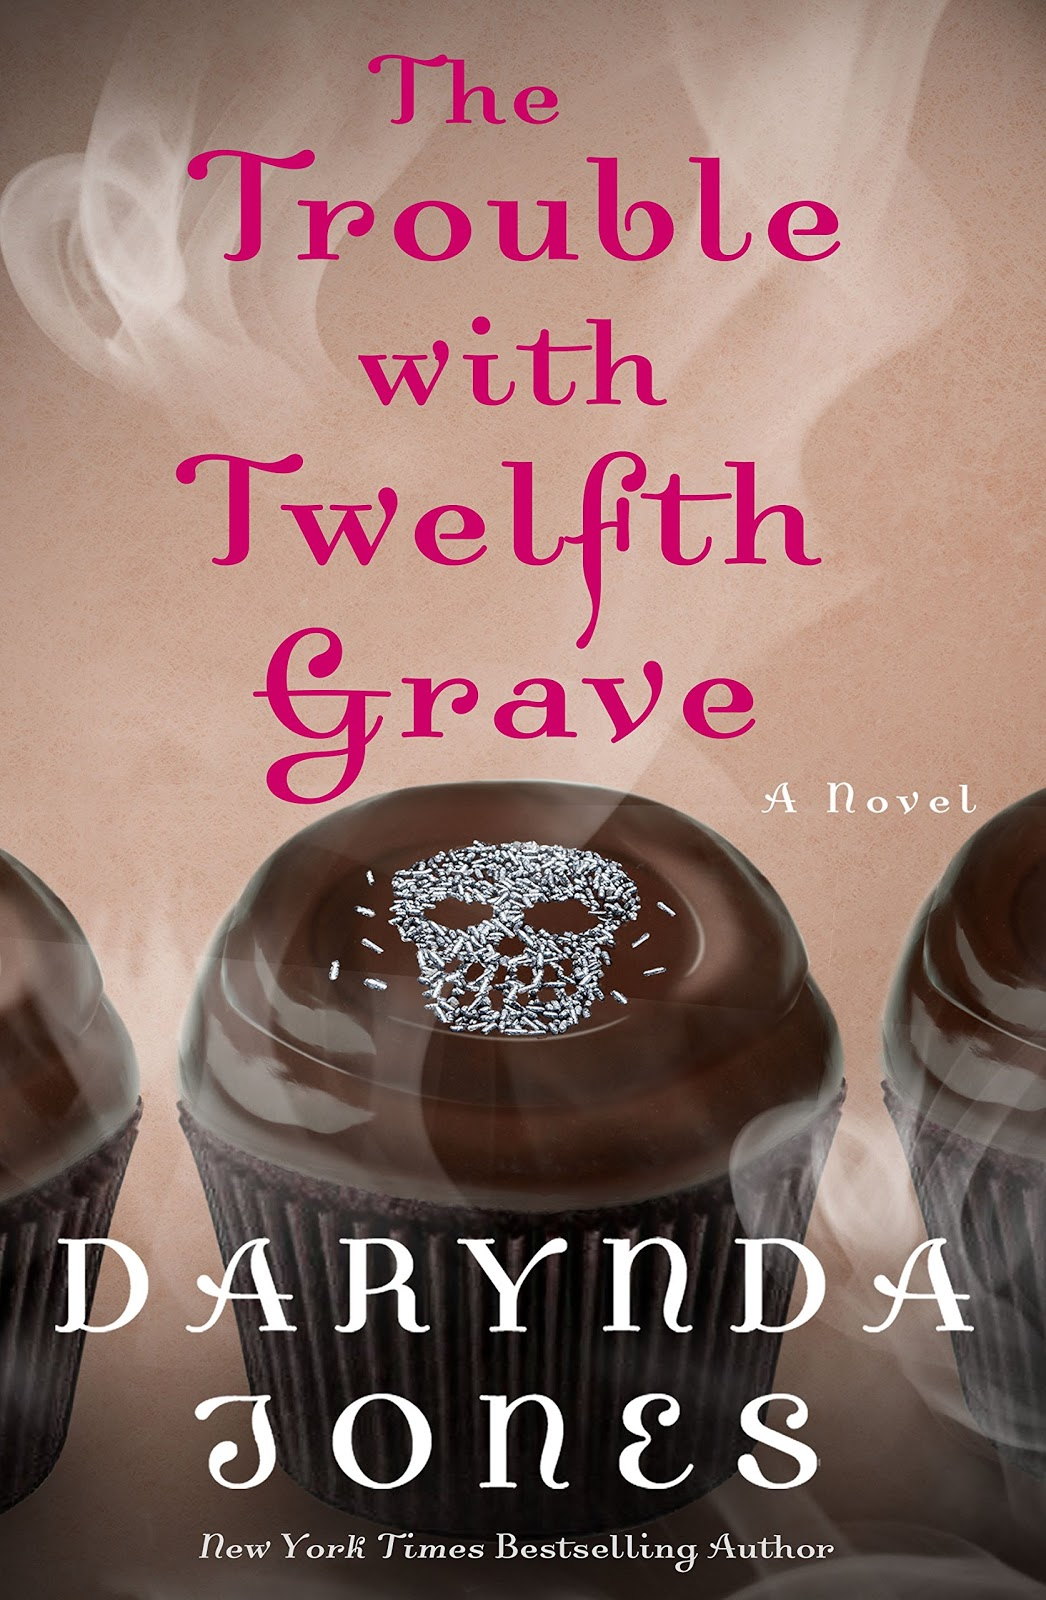 The Trouble with Twelfth Grave (Darynda Jones)